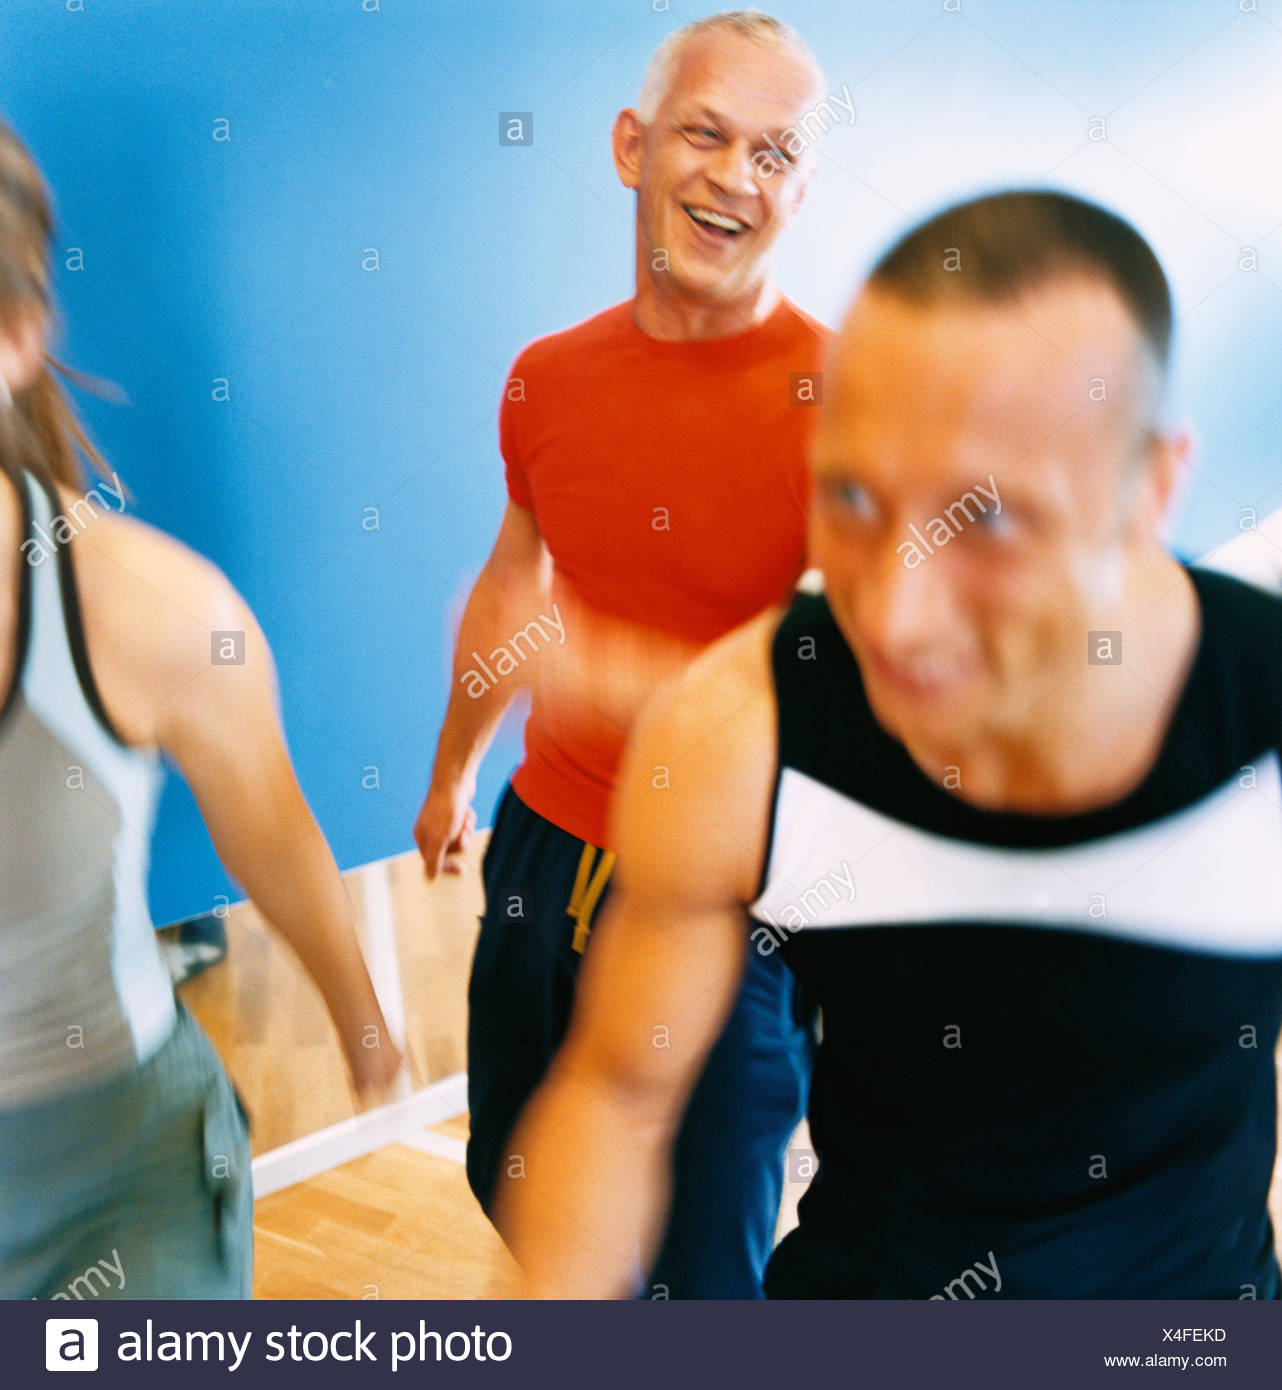 30-34 years 70-74 years 75-79 years activity adults only aerobics athlete bodybuilding color image elderly man exercising - Stock Image